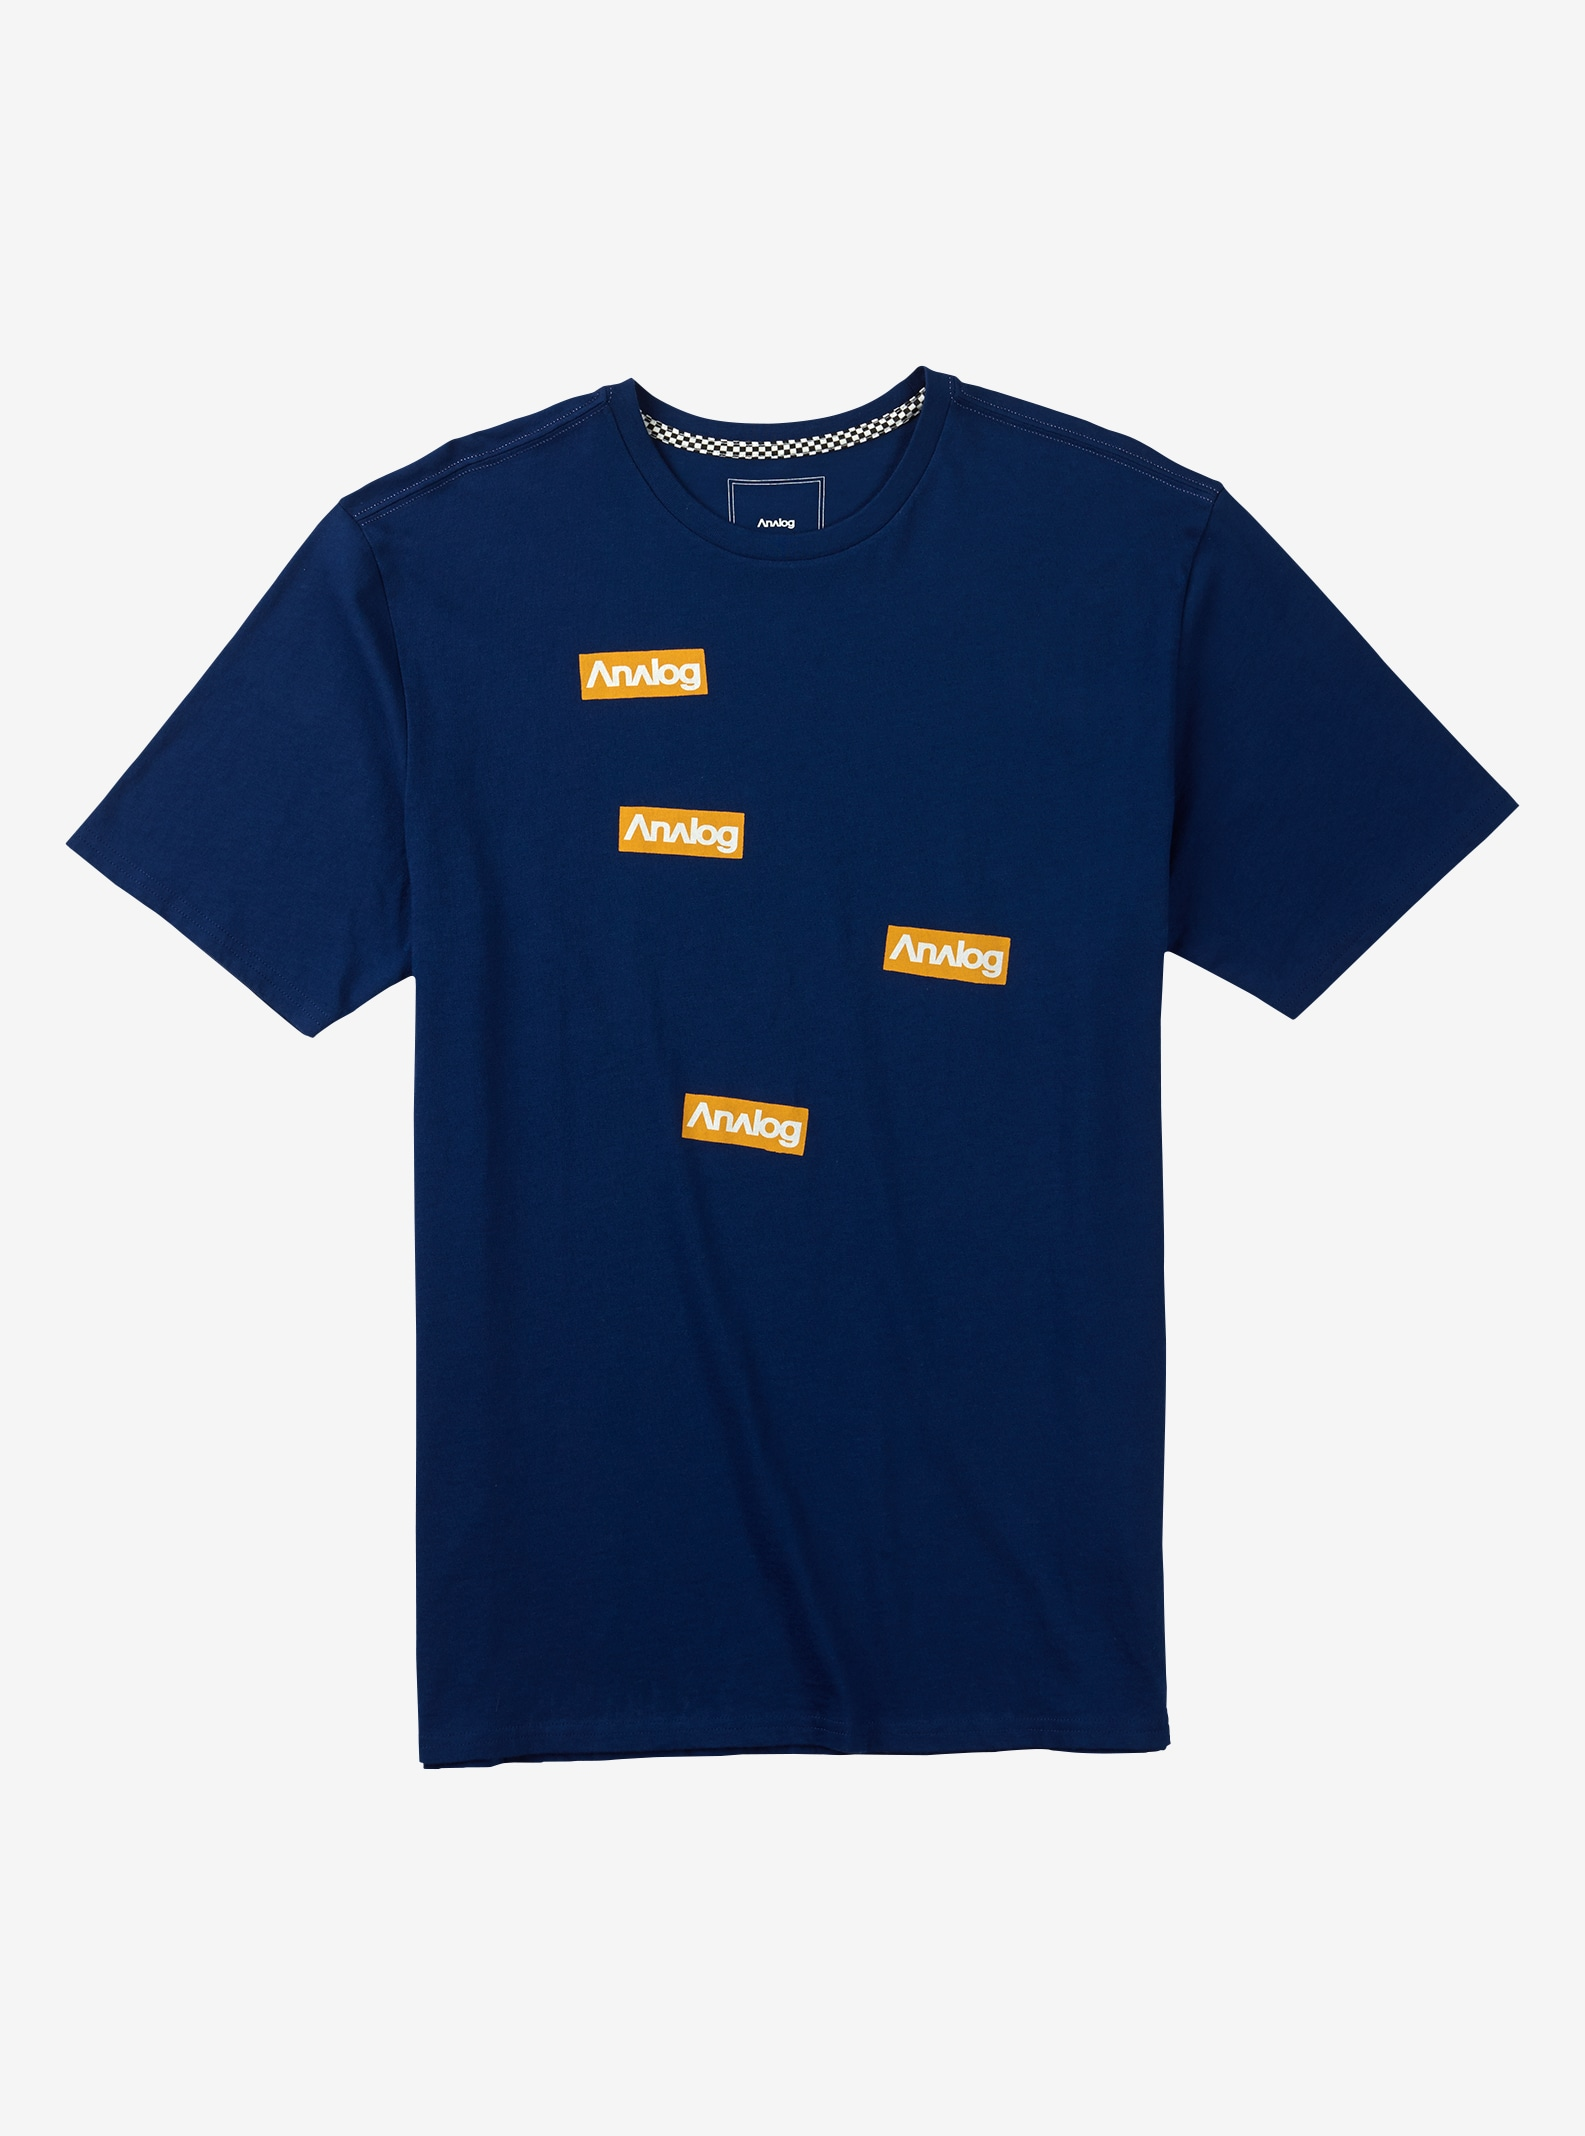 Men's Analog Kent Short Sleeve T Shirt shown in Deflate Gate